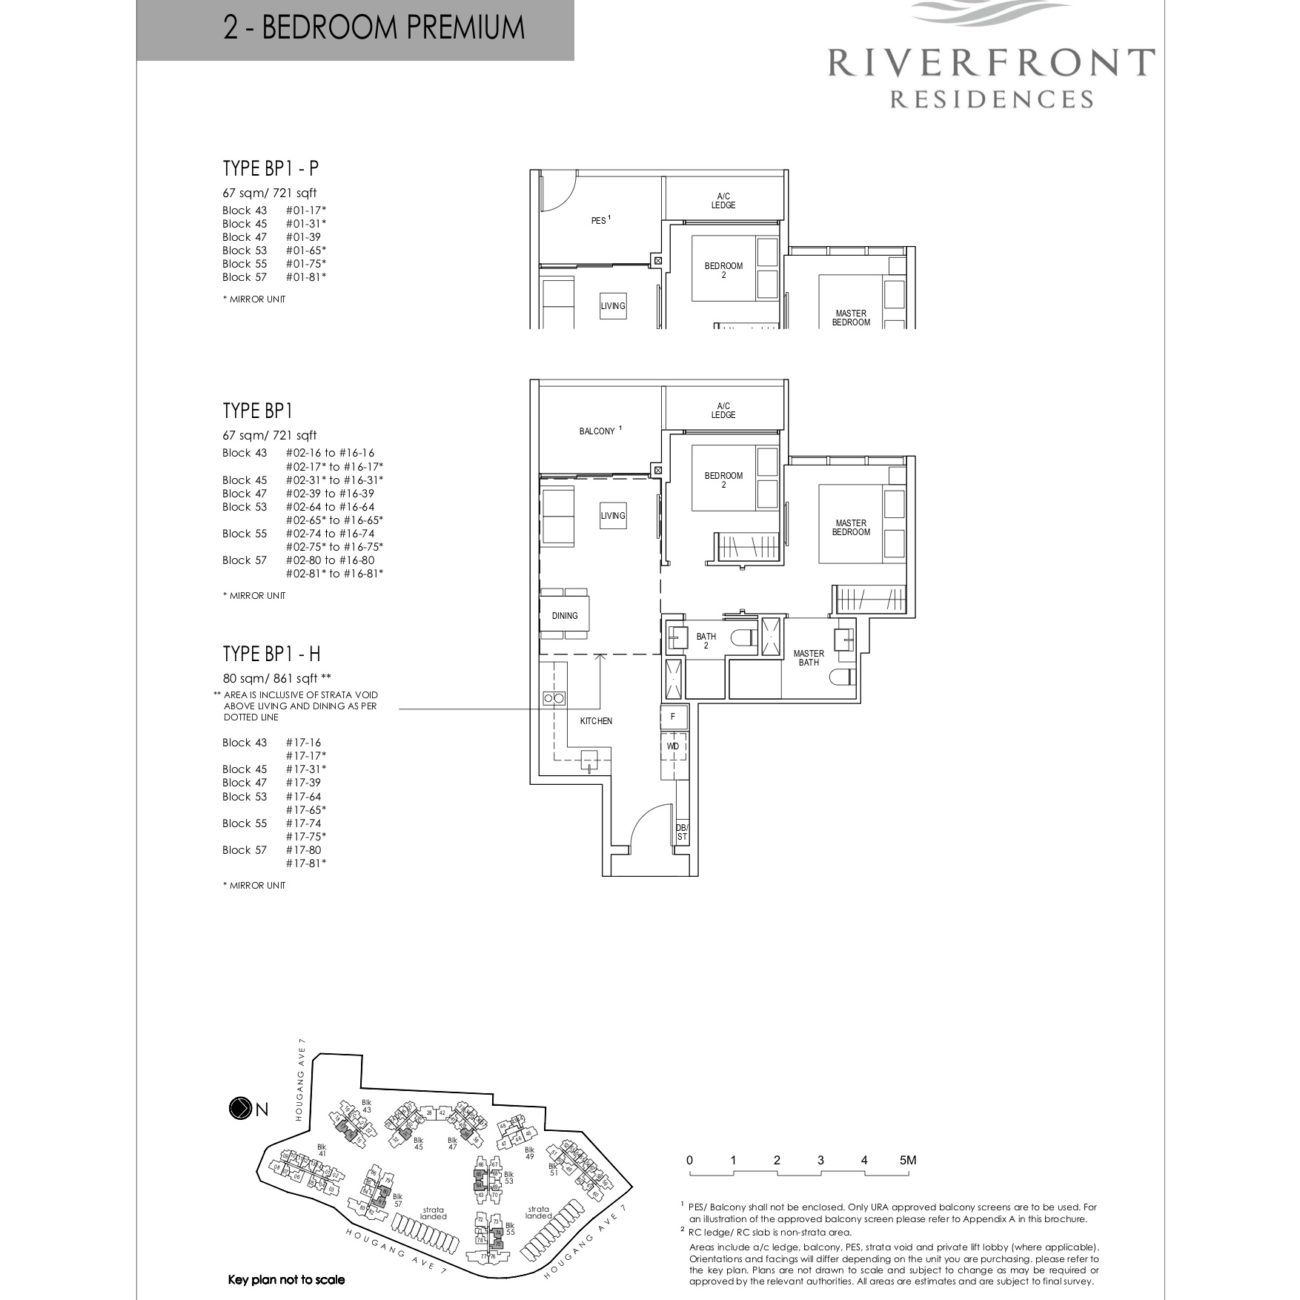 riverfront-residences-floorplan-2bedroom-premium-bp1